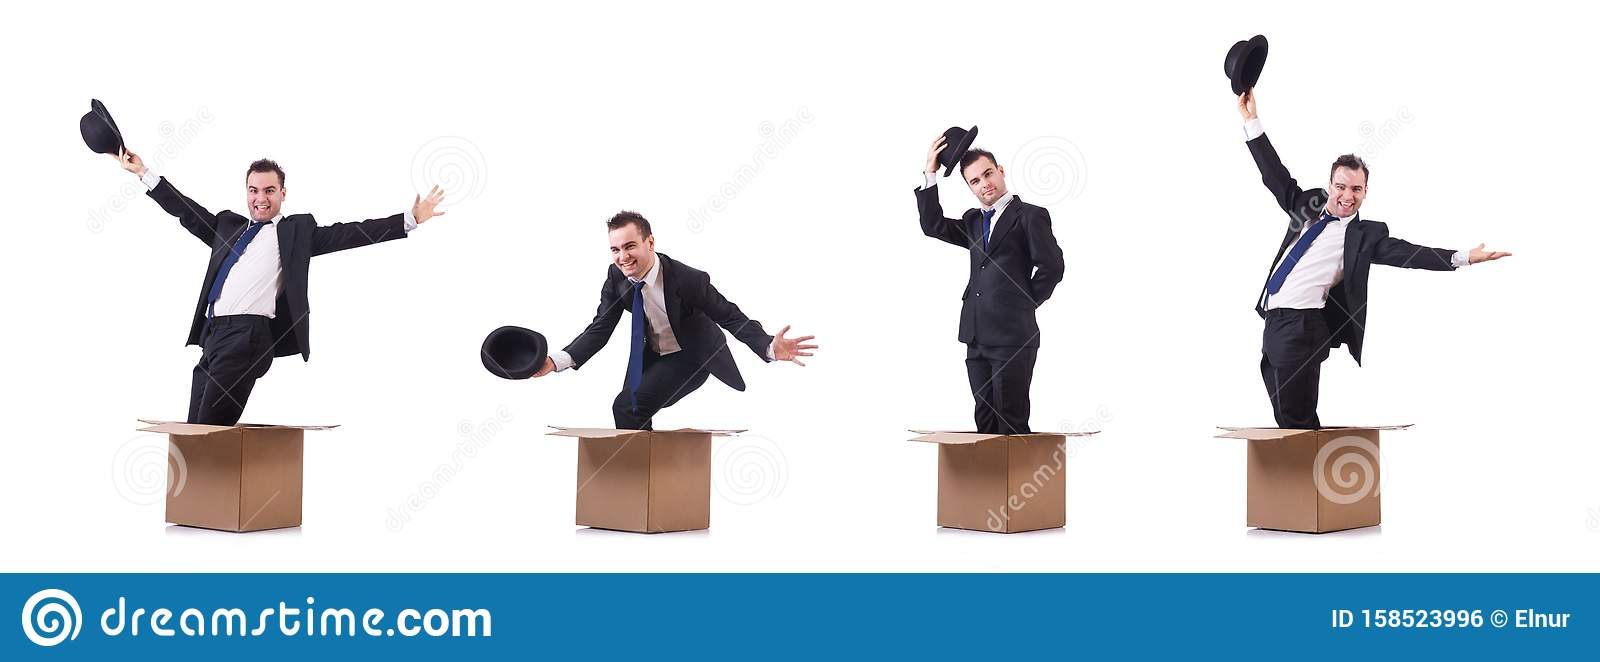 Thinking Out Box Concept Stock Images - Download 613 ...